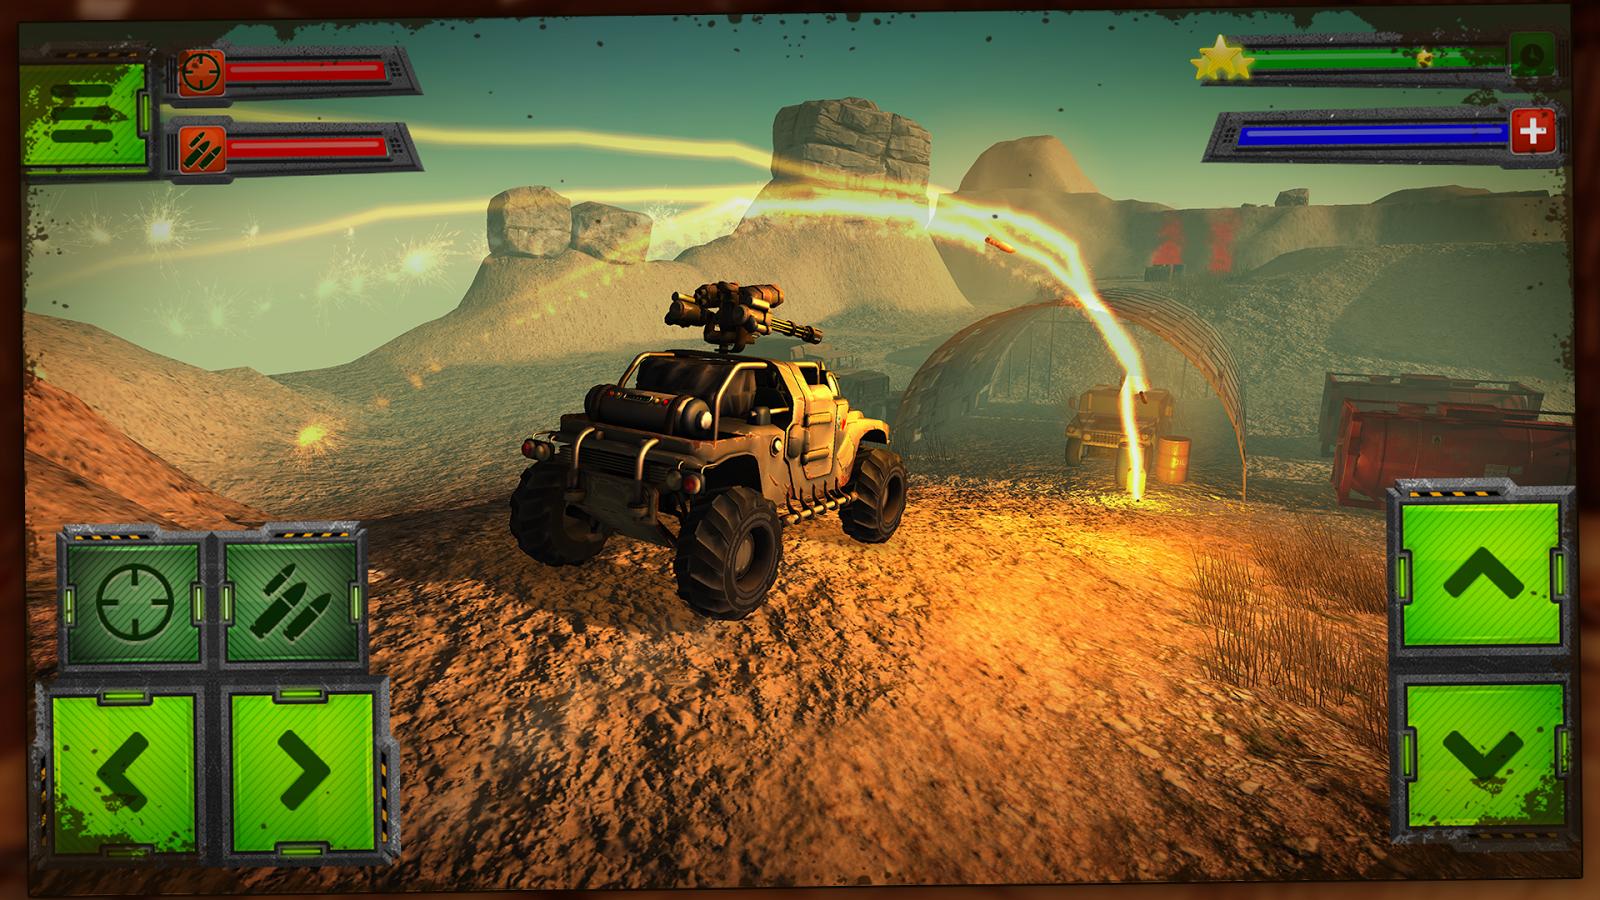 Screenshots of Gun Rider - Racing Shooter for iPhone